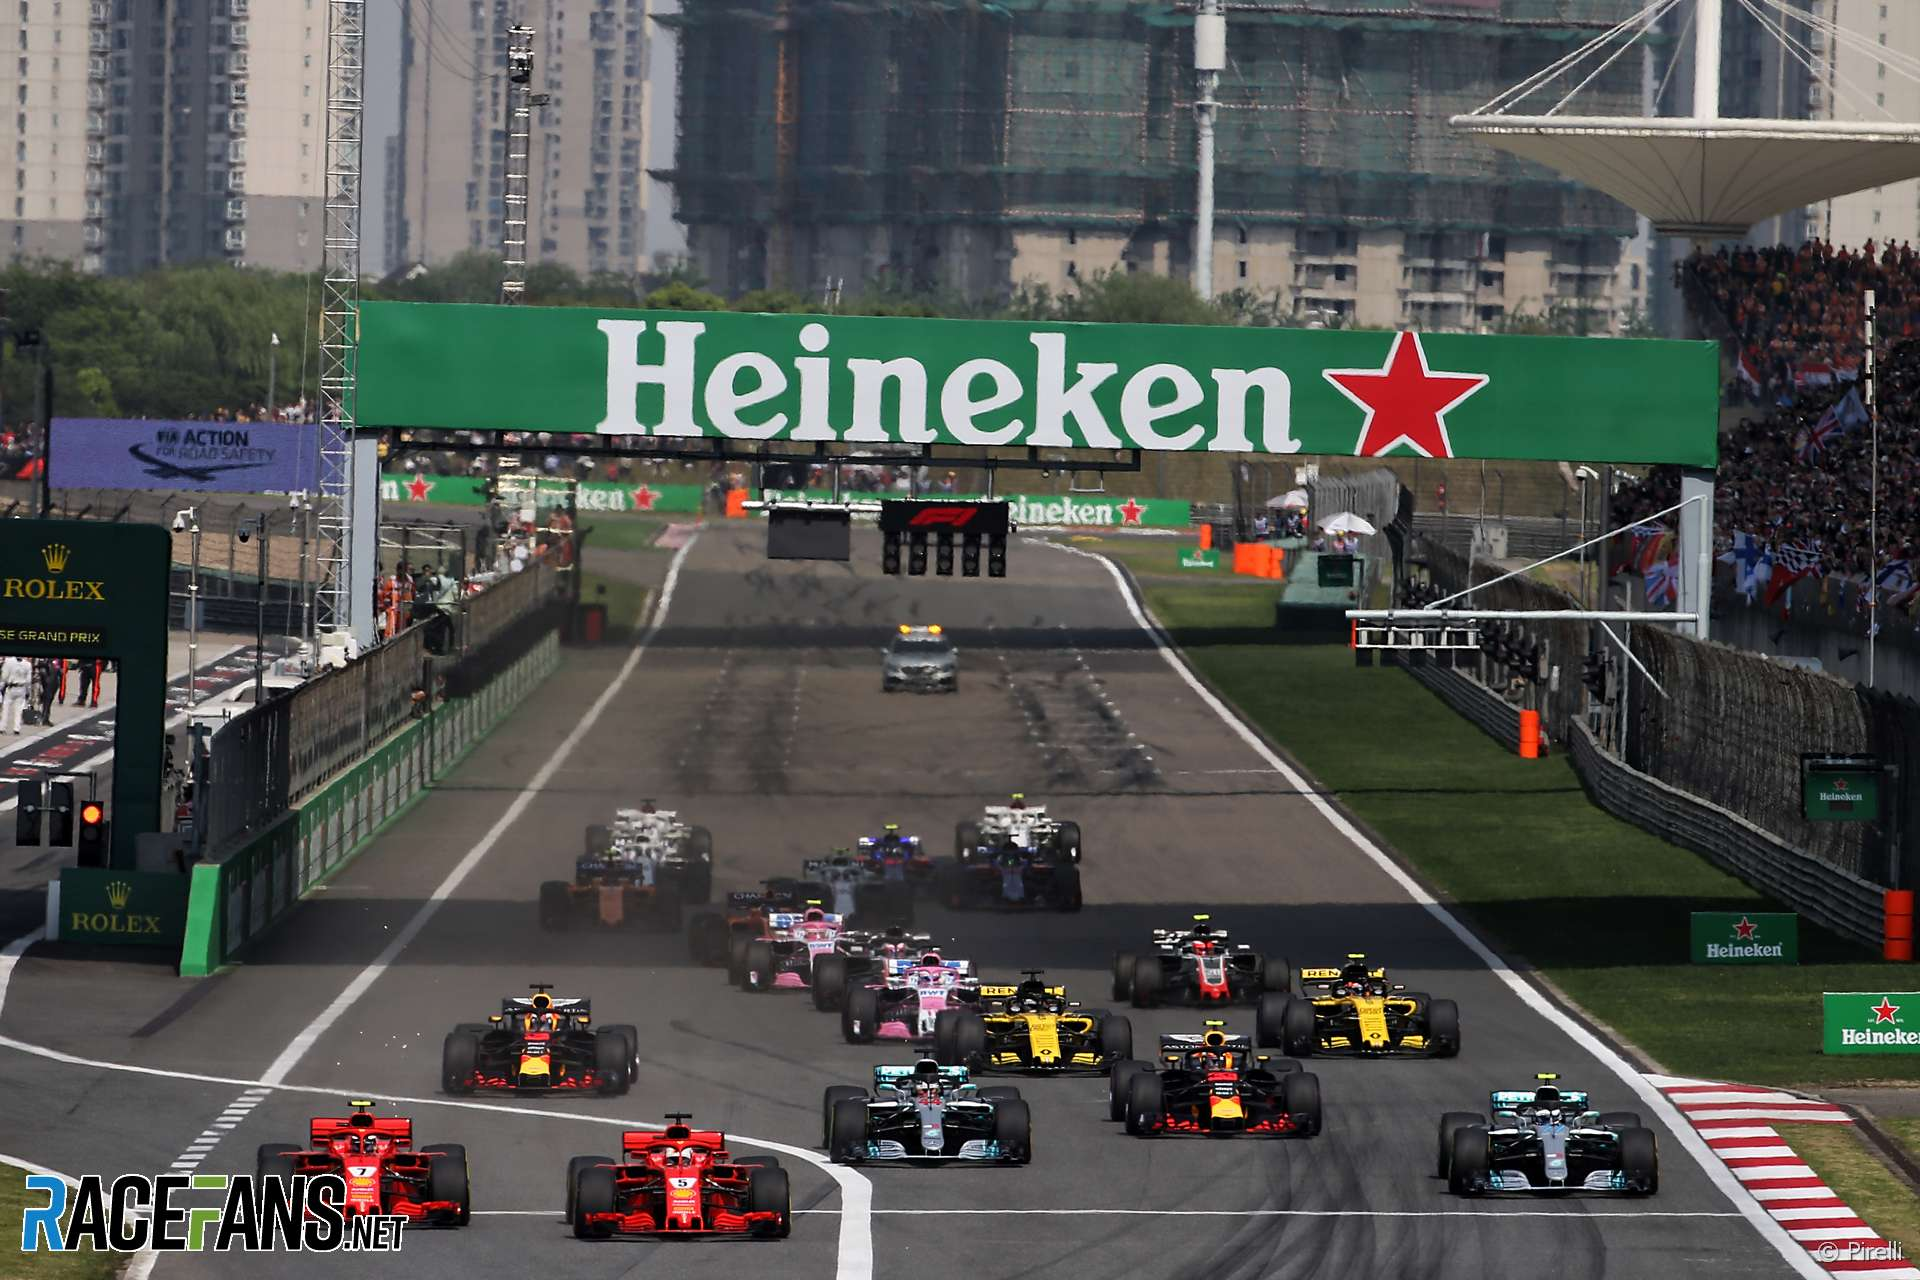 Grand Prix Racing >> 2019 Chinese Grand Prix F1 Race Information Racefans